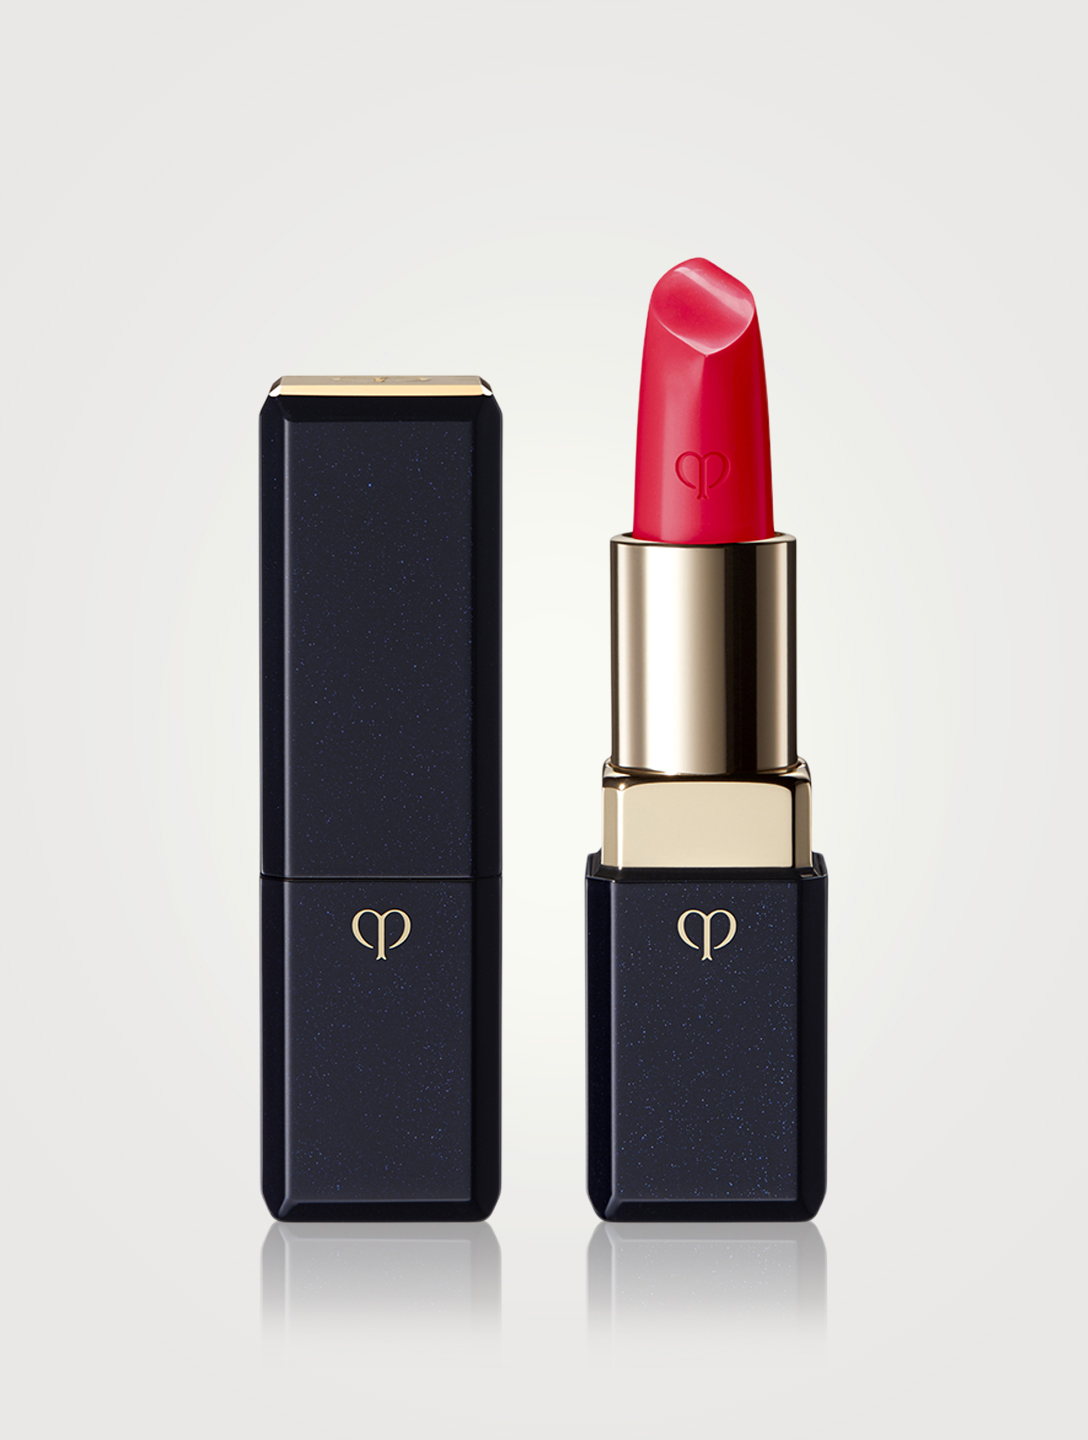 CLÉ DE PEAU BEAUTÉ Lipstick Cashmere Beauty Orange